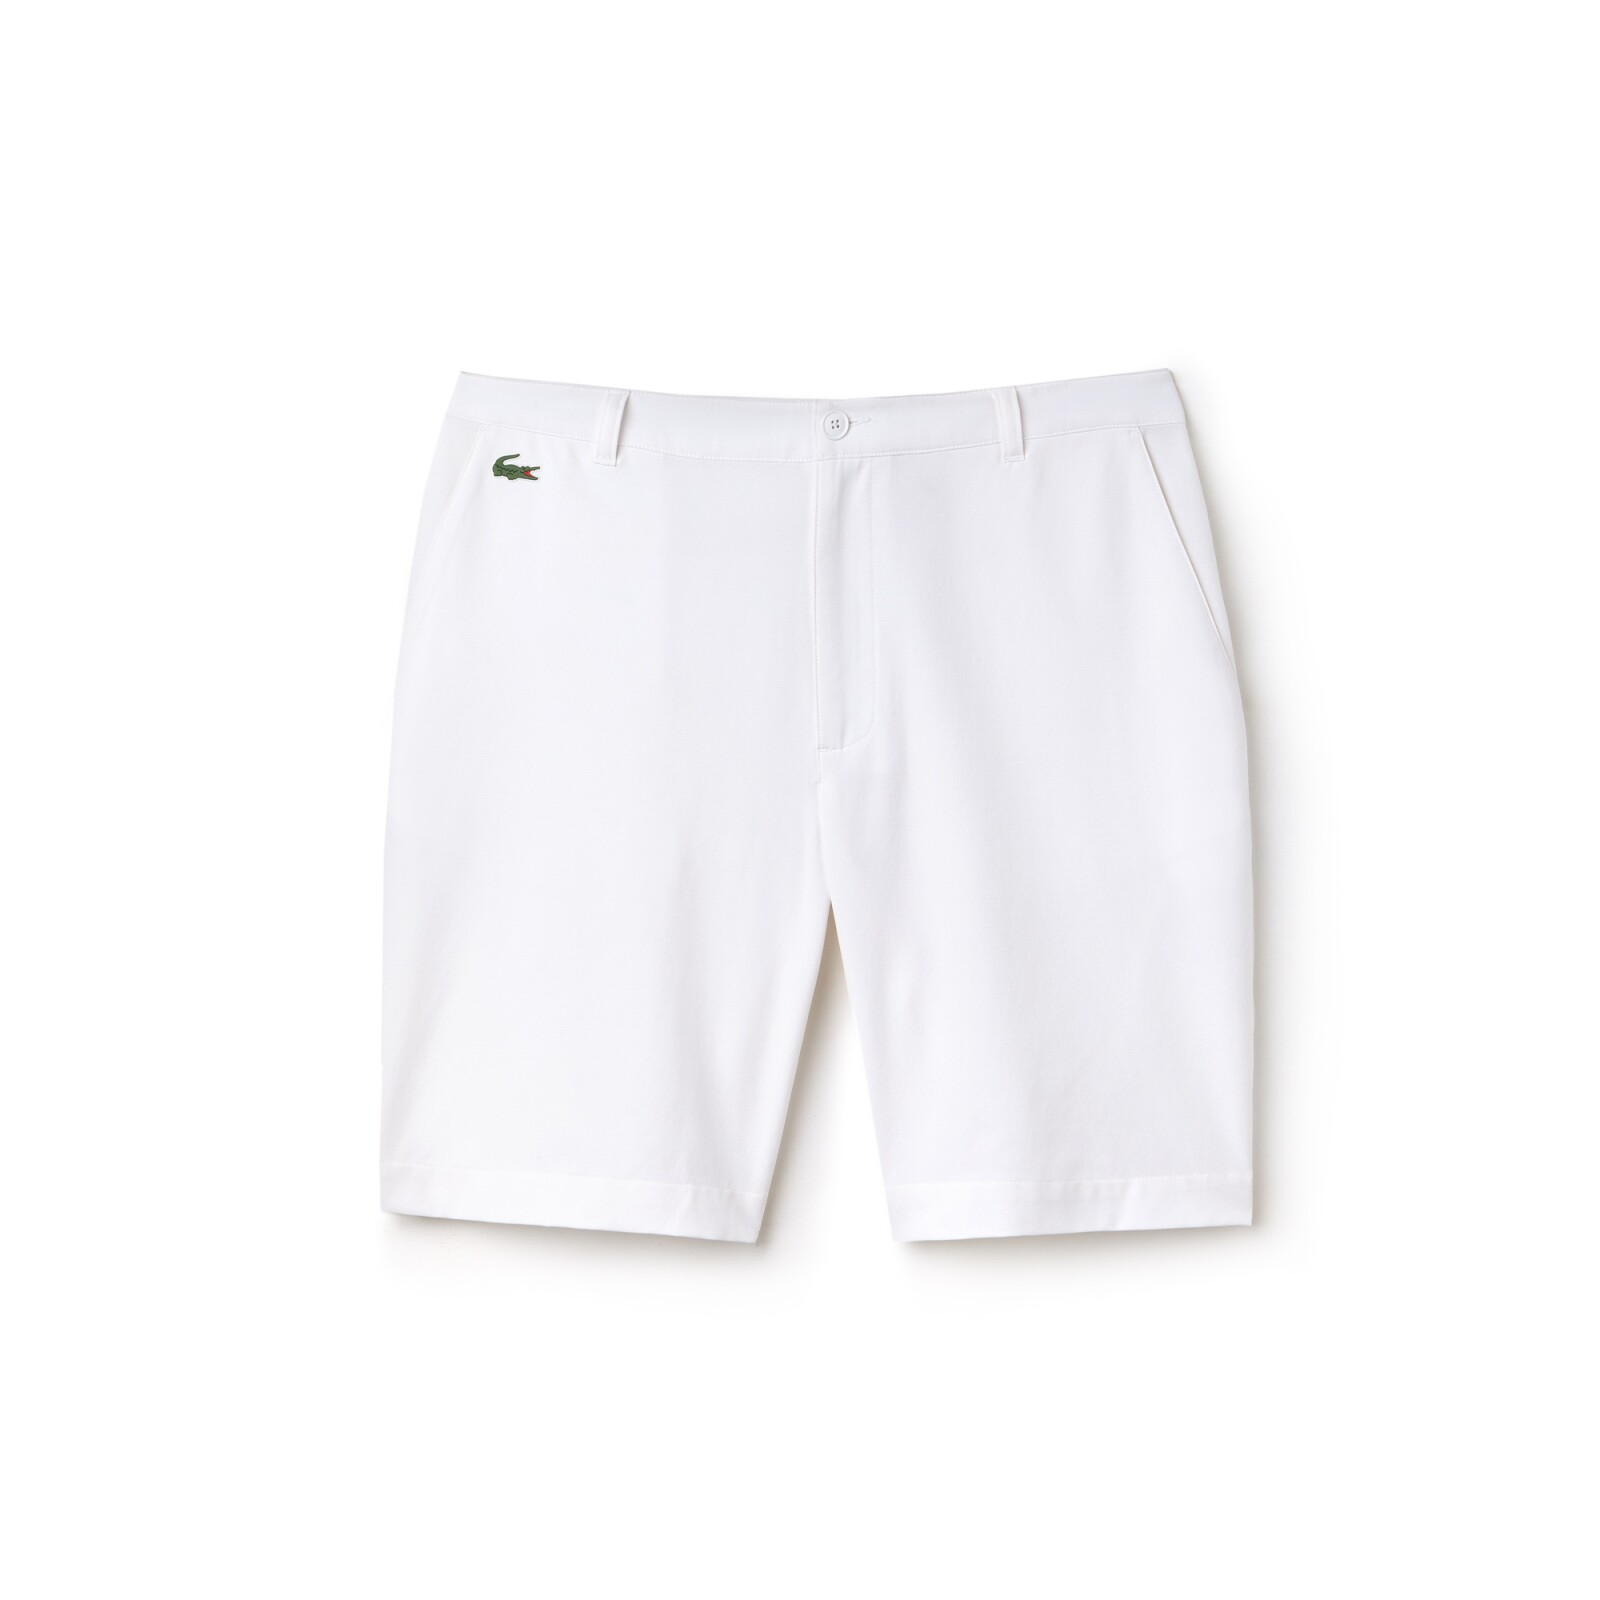 Short blanco para practicar golf